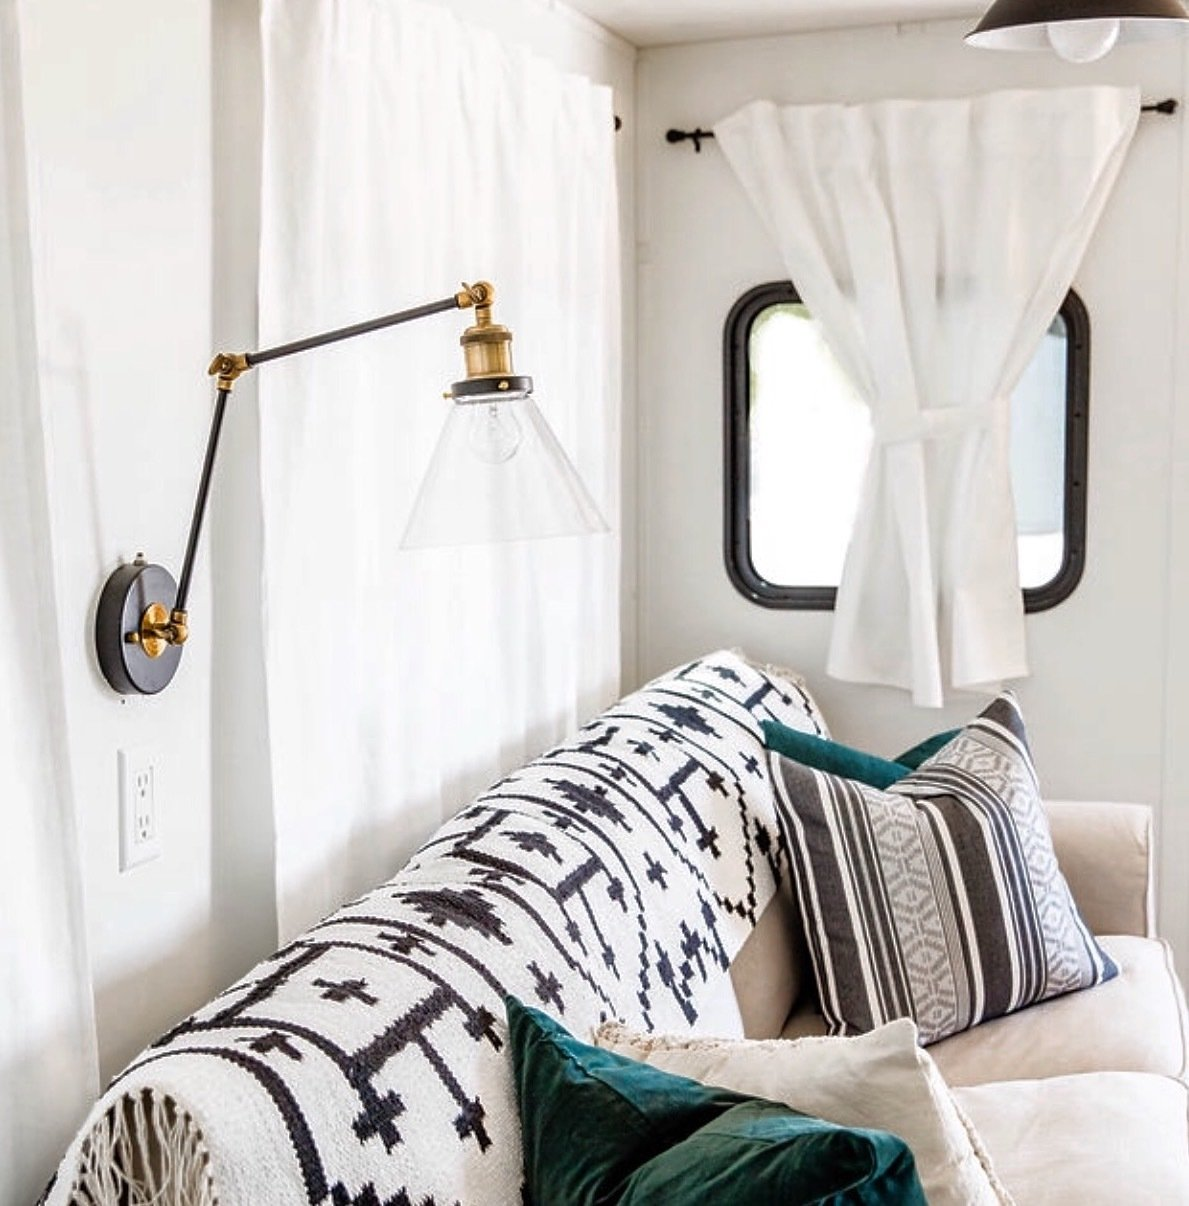 Living Room, Sofa, and Wall Lighting LNC Plug-in Wall Lamp with swing arm from World Market.  Photo 8 of 16 in Hit the Road With This Chic Camper on Sale For $28K